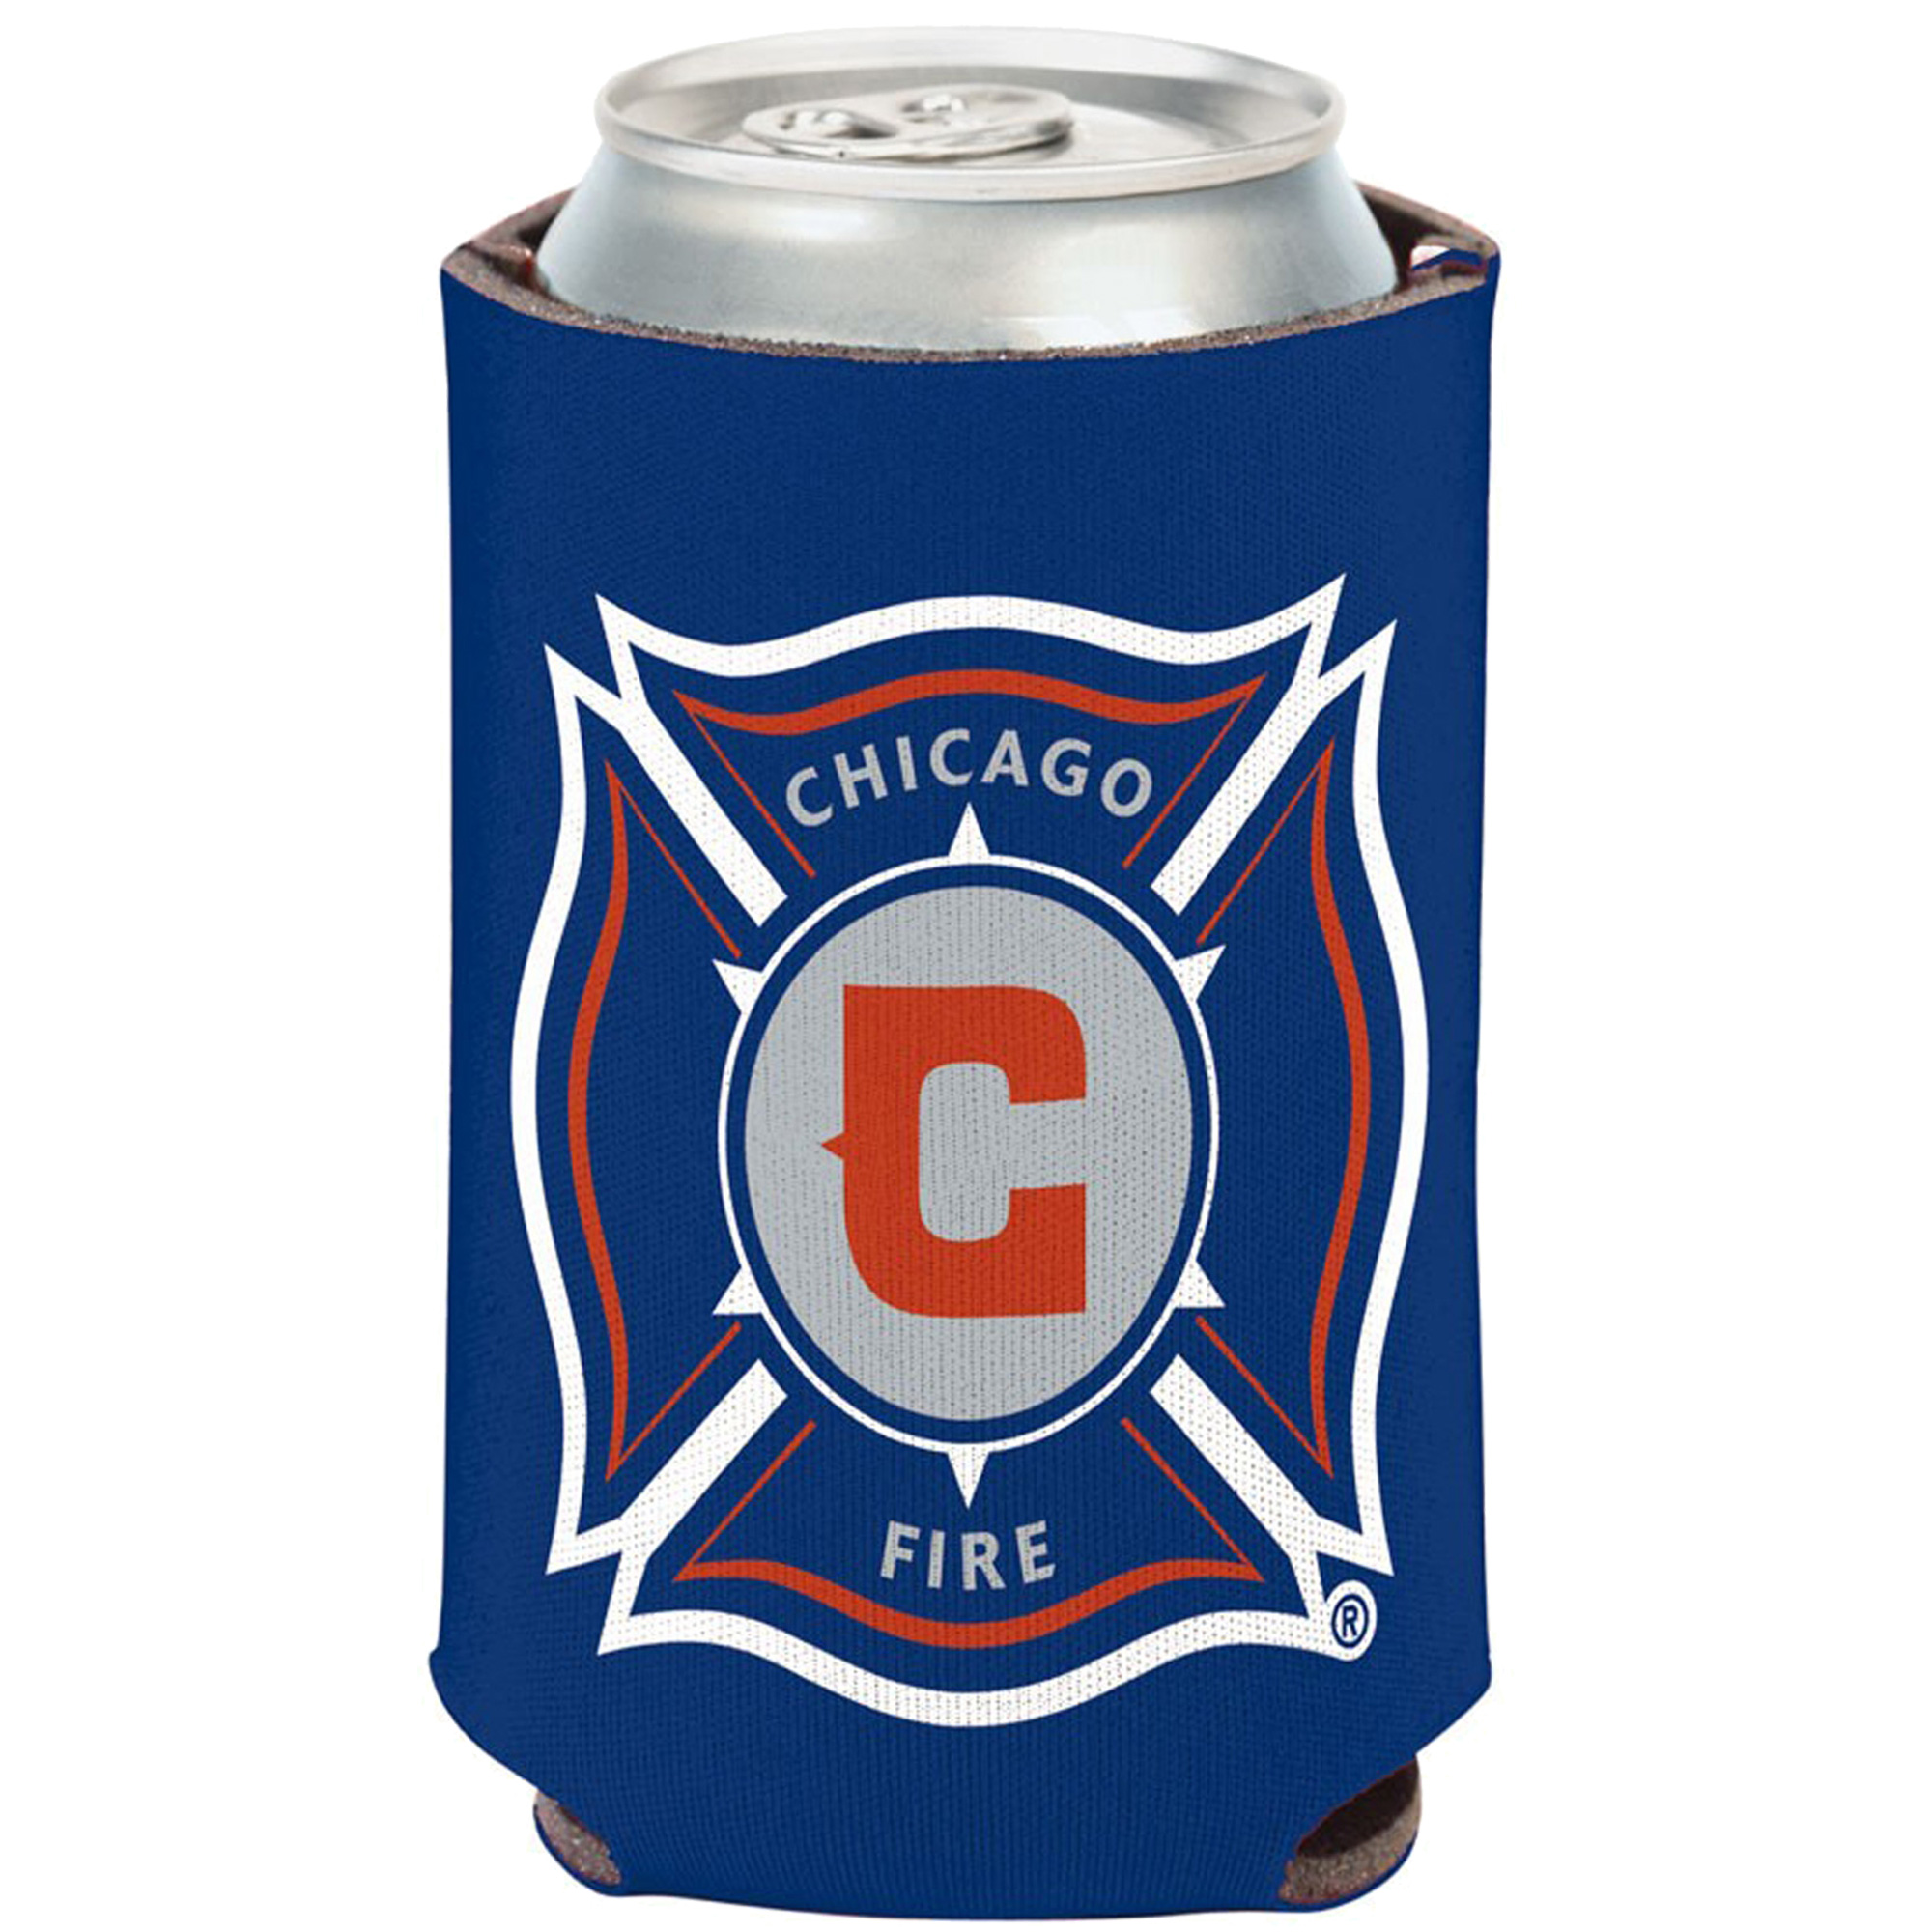 Chicago Fire SC WinCraft Can Cooler - No Size